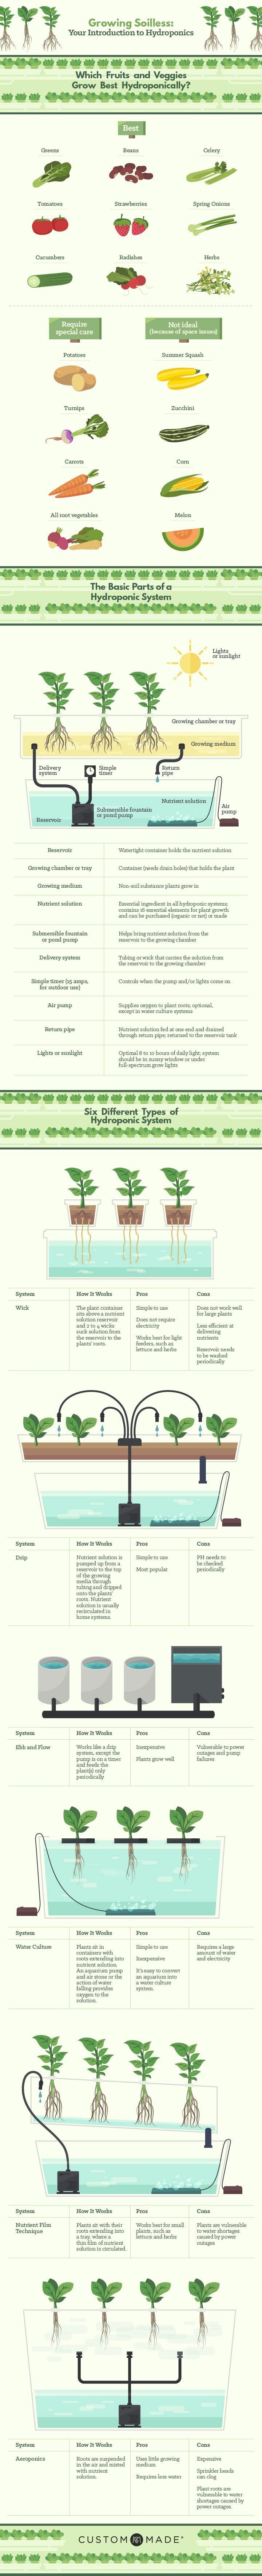 Hydroponic Growing Medium At Home